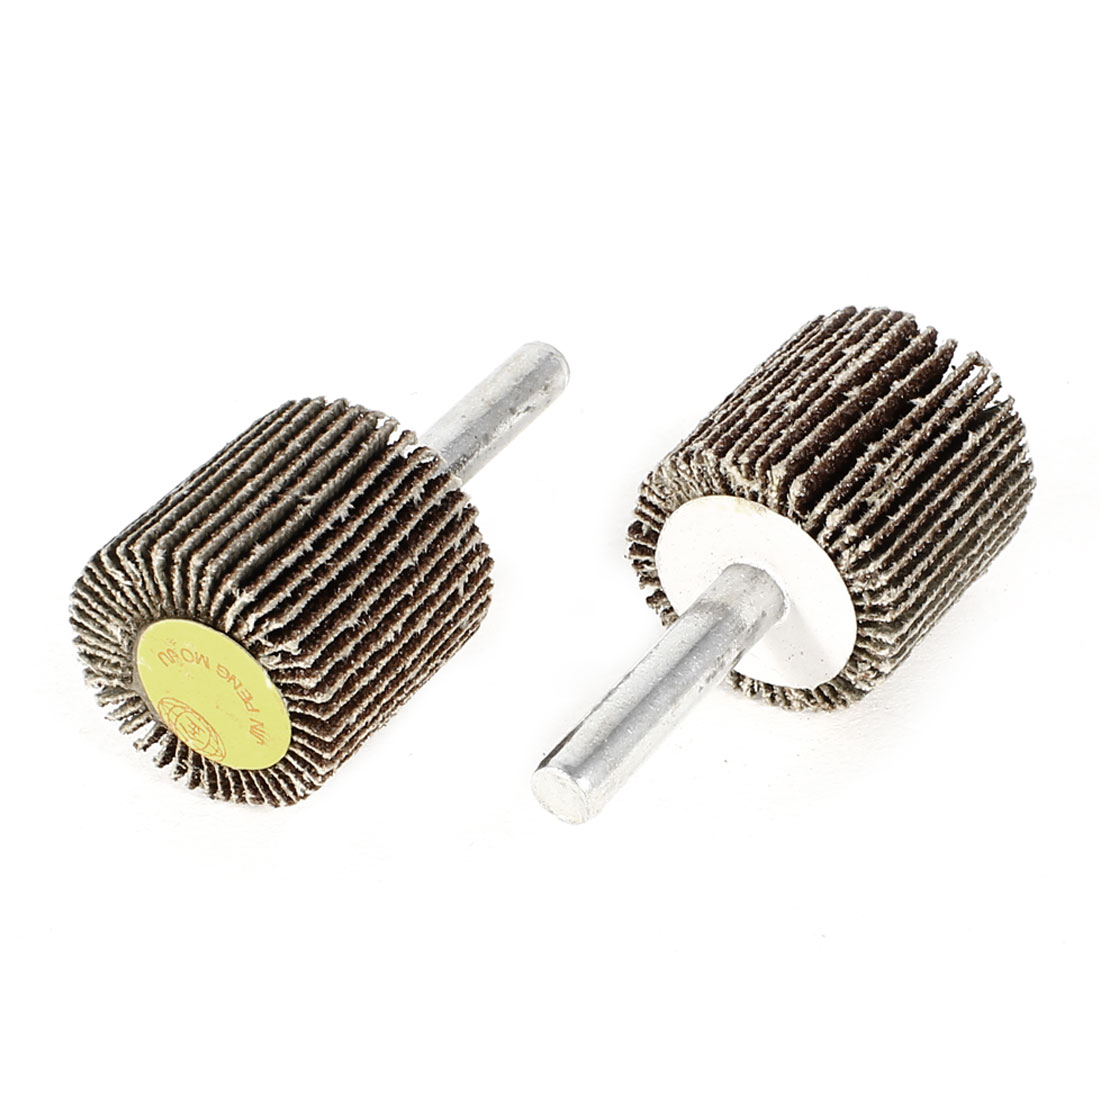 "2pcs Replacement 2"" Length Abrasive Mounted Flap Wheels Brush 6x25mm"